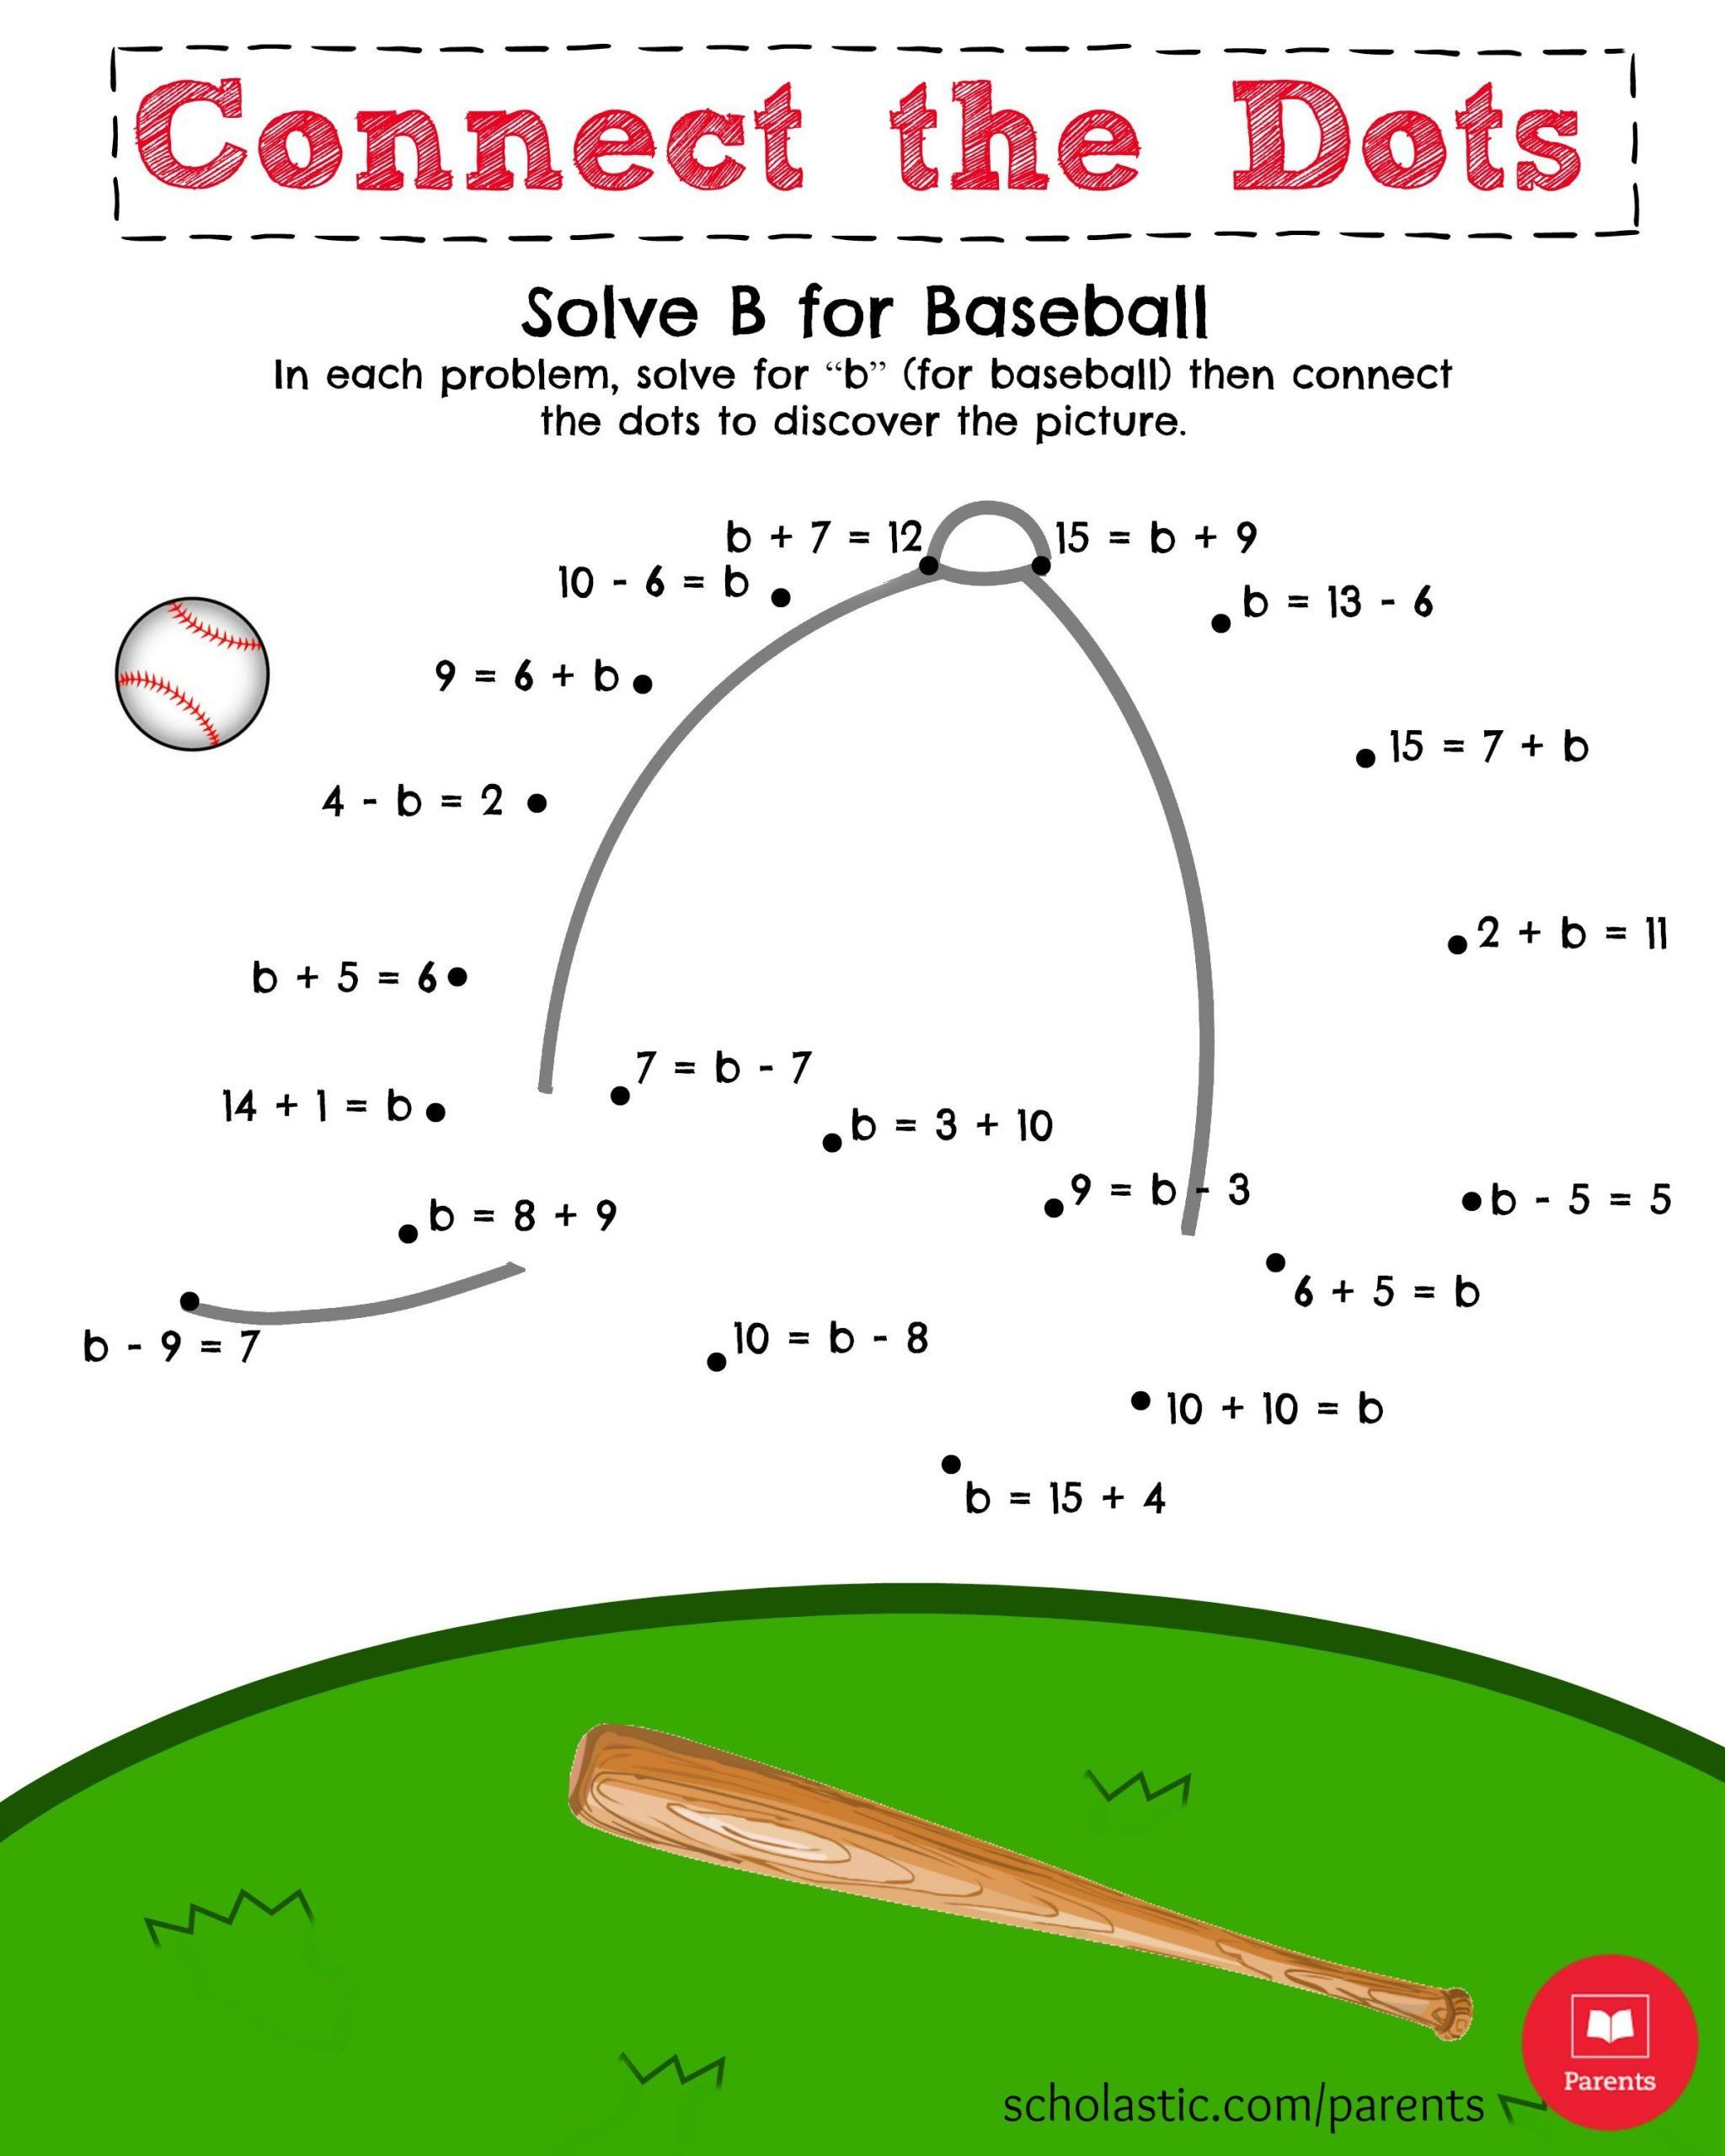 Baseball Math Worksheets Help Your Child Solve For B And Then Connect The Dots In Math Printables Math Worksheets Special Education Math [ 2560 x 2048 Pixel ]